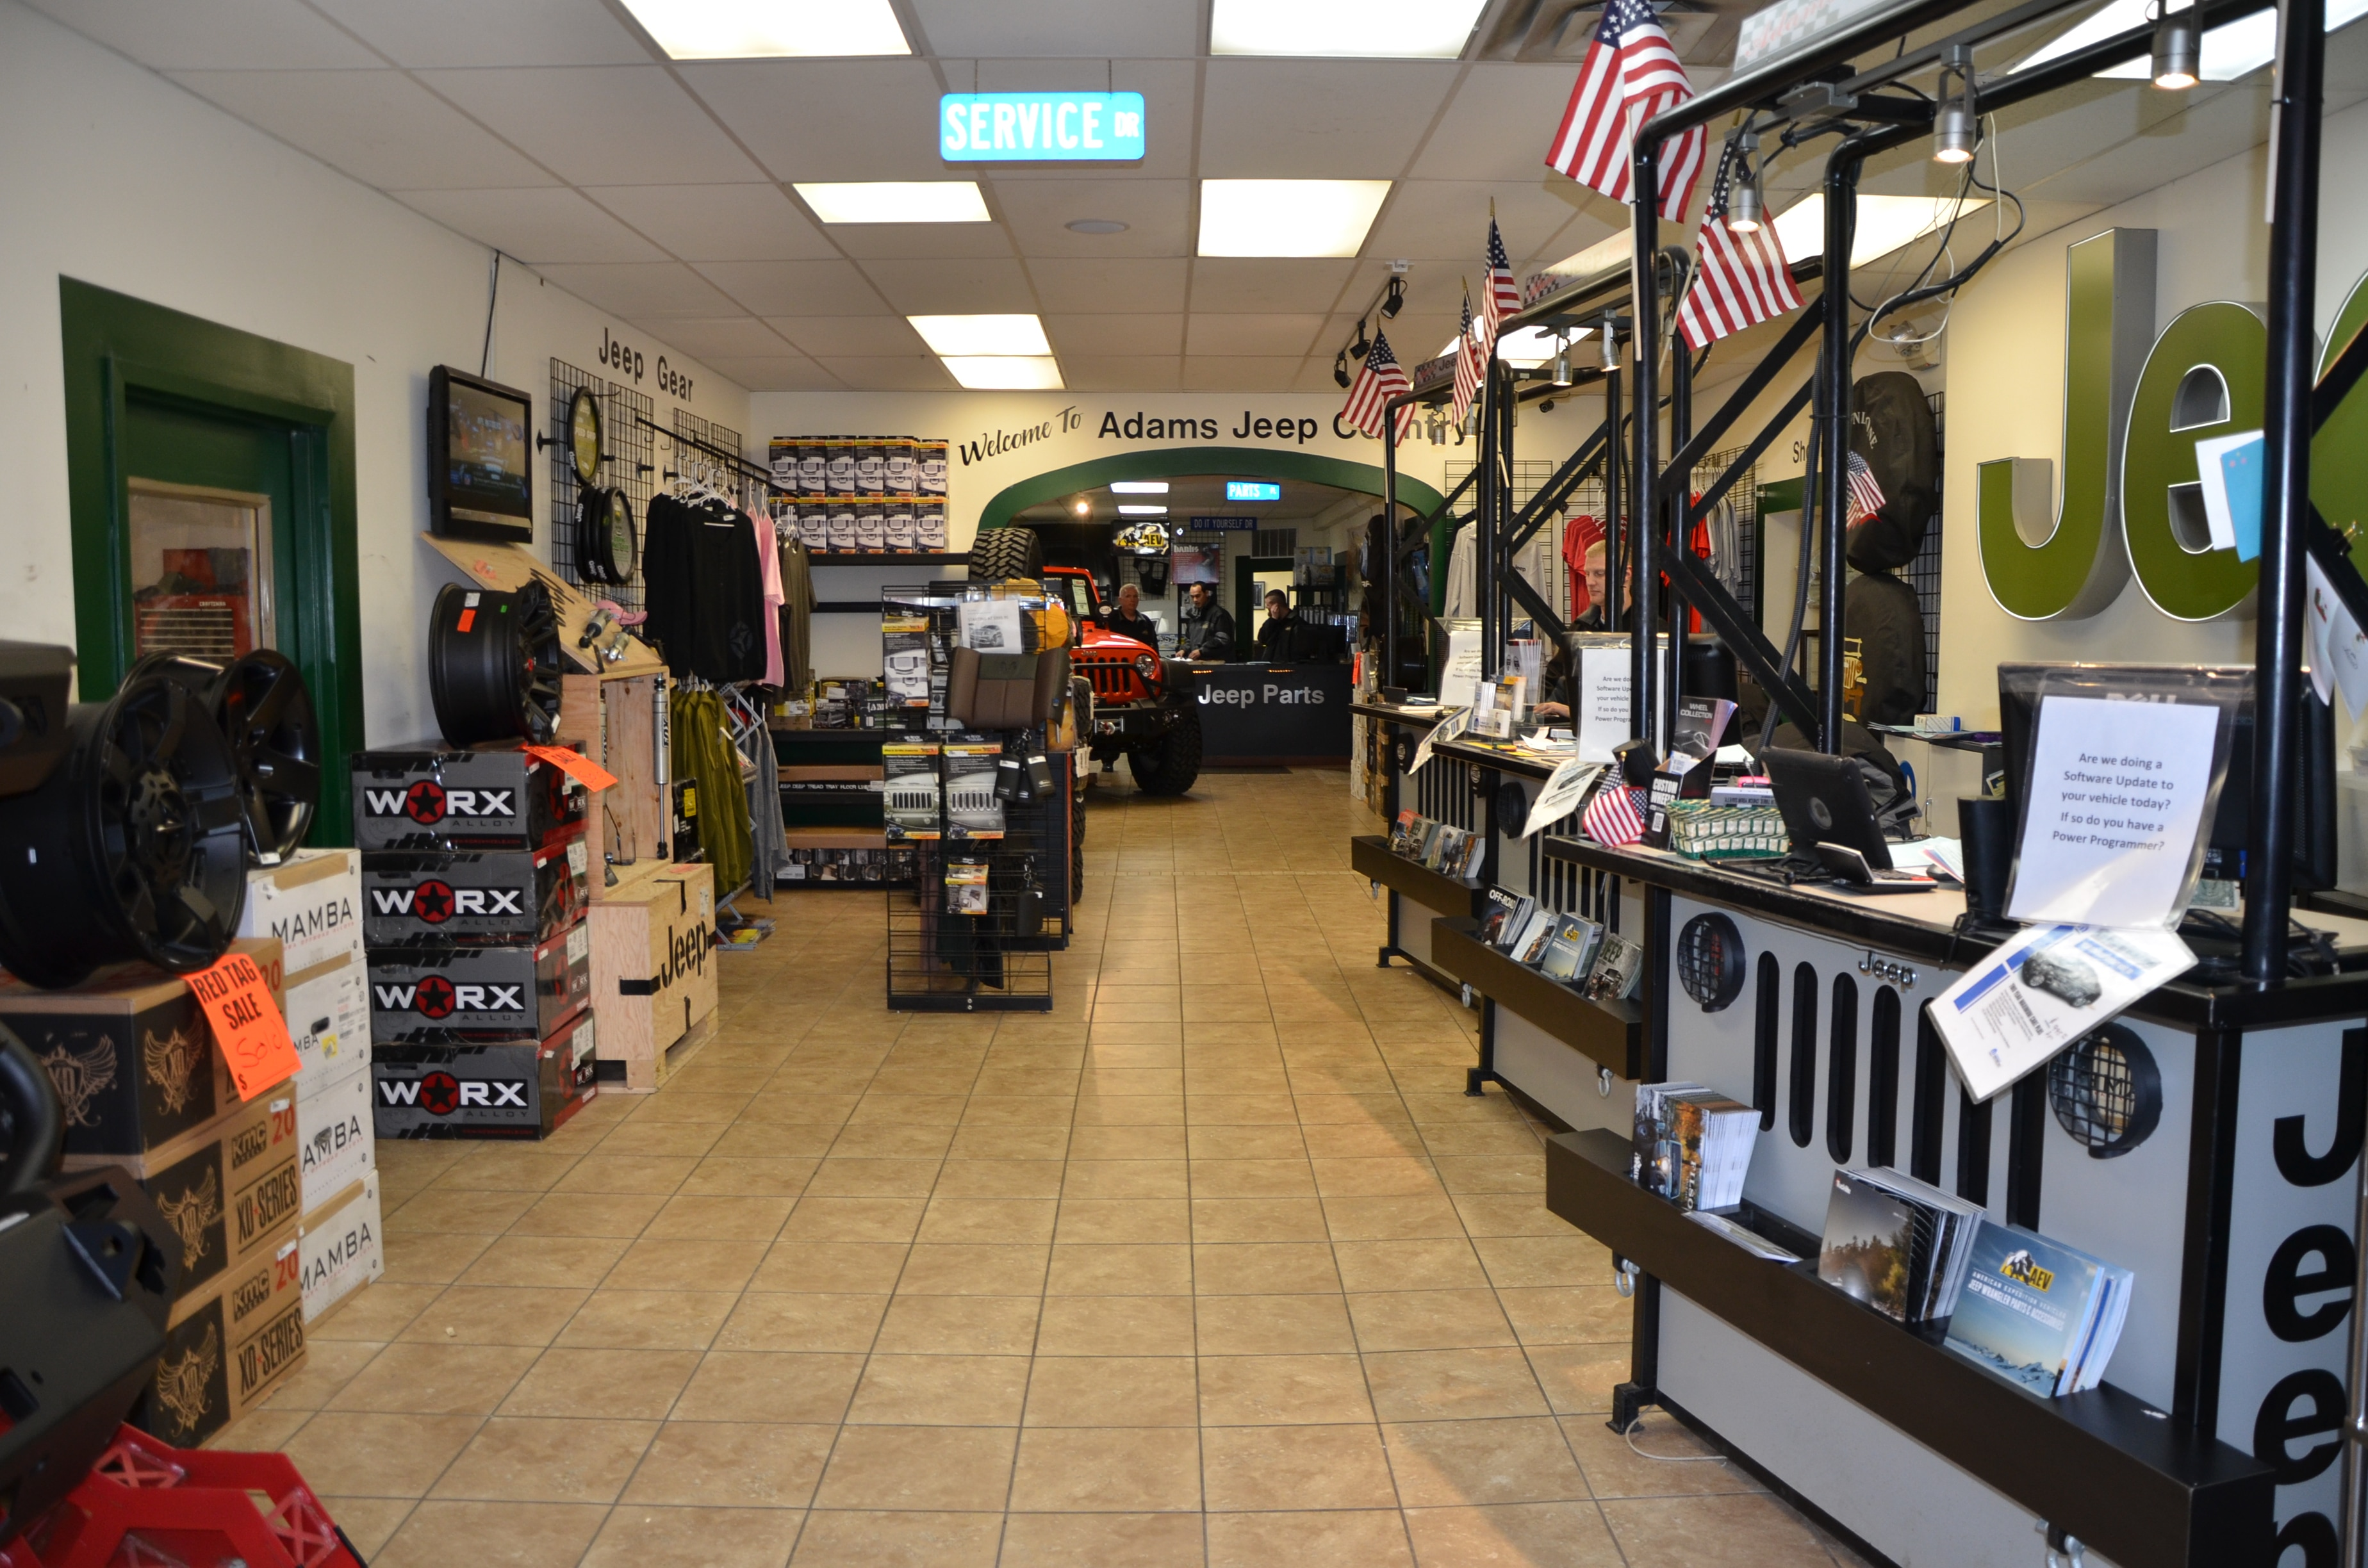 Adams jeep of maryland new jeep dealership in aberdeen md 21001 website solutioingenieria Choice Image